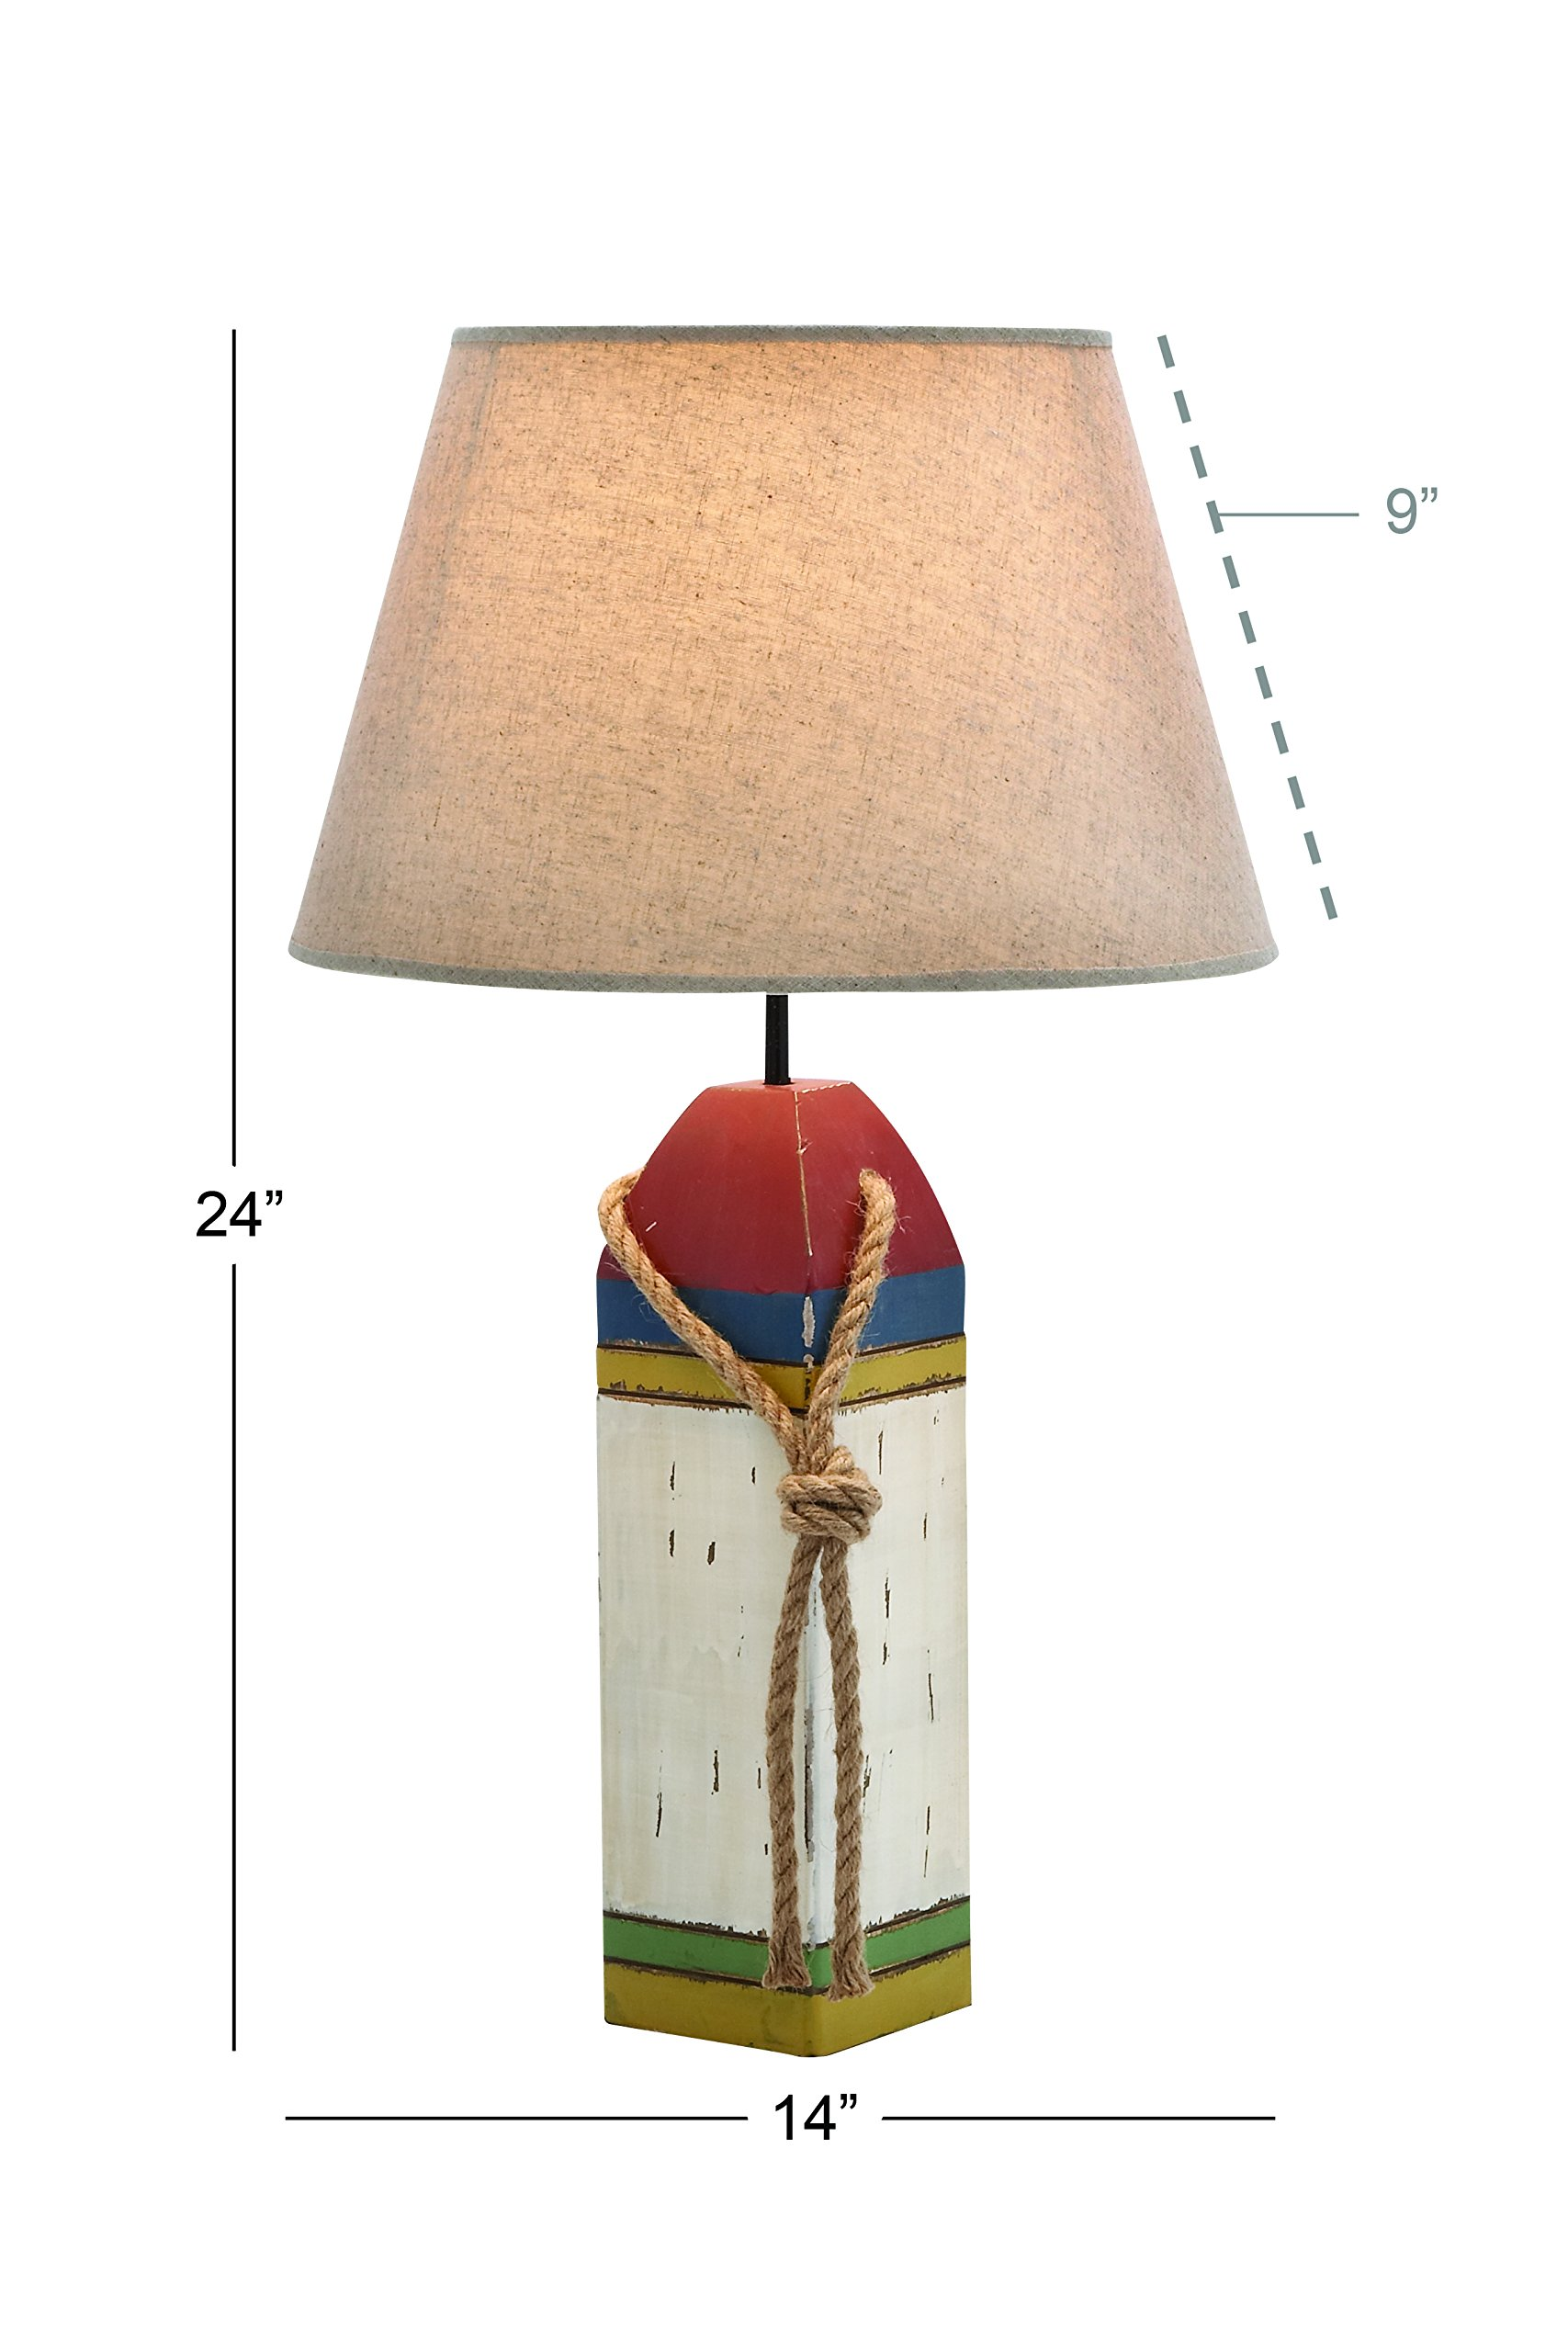 Deco 79 28751 Wood Buoy Table lamp 24'' H